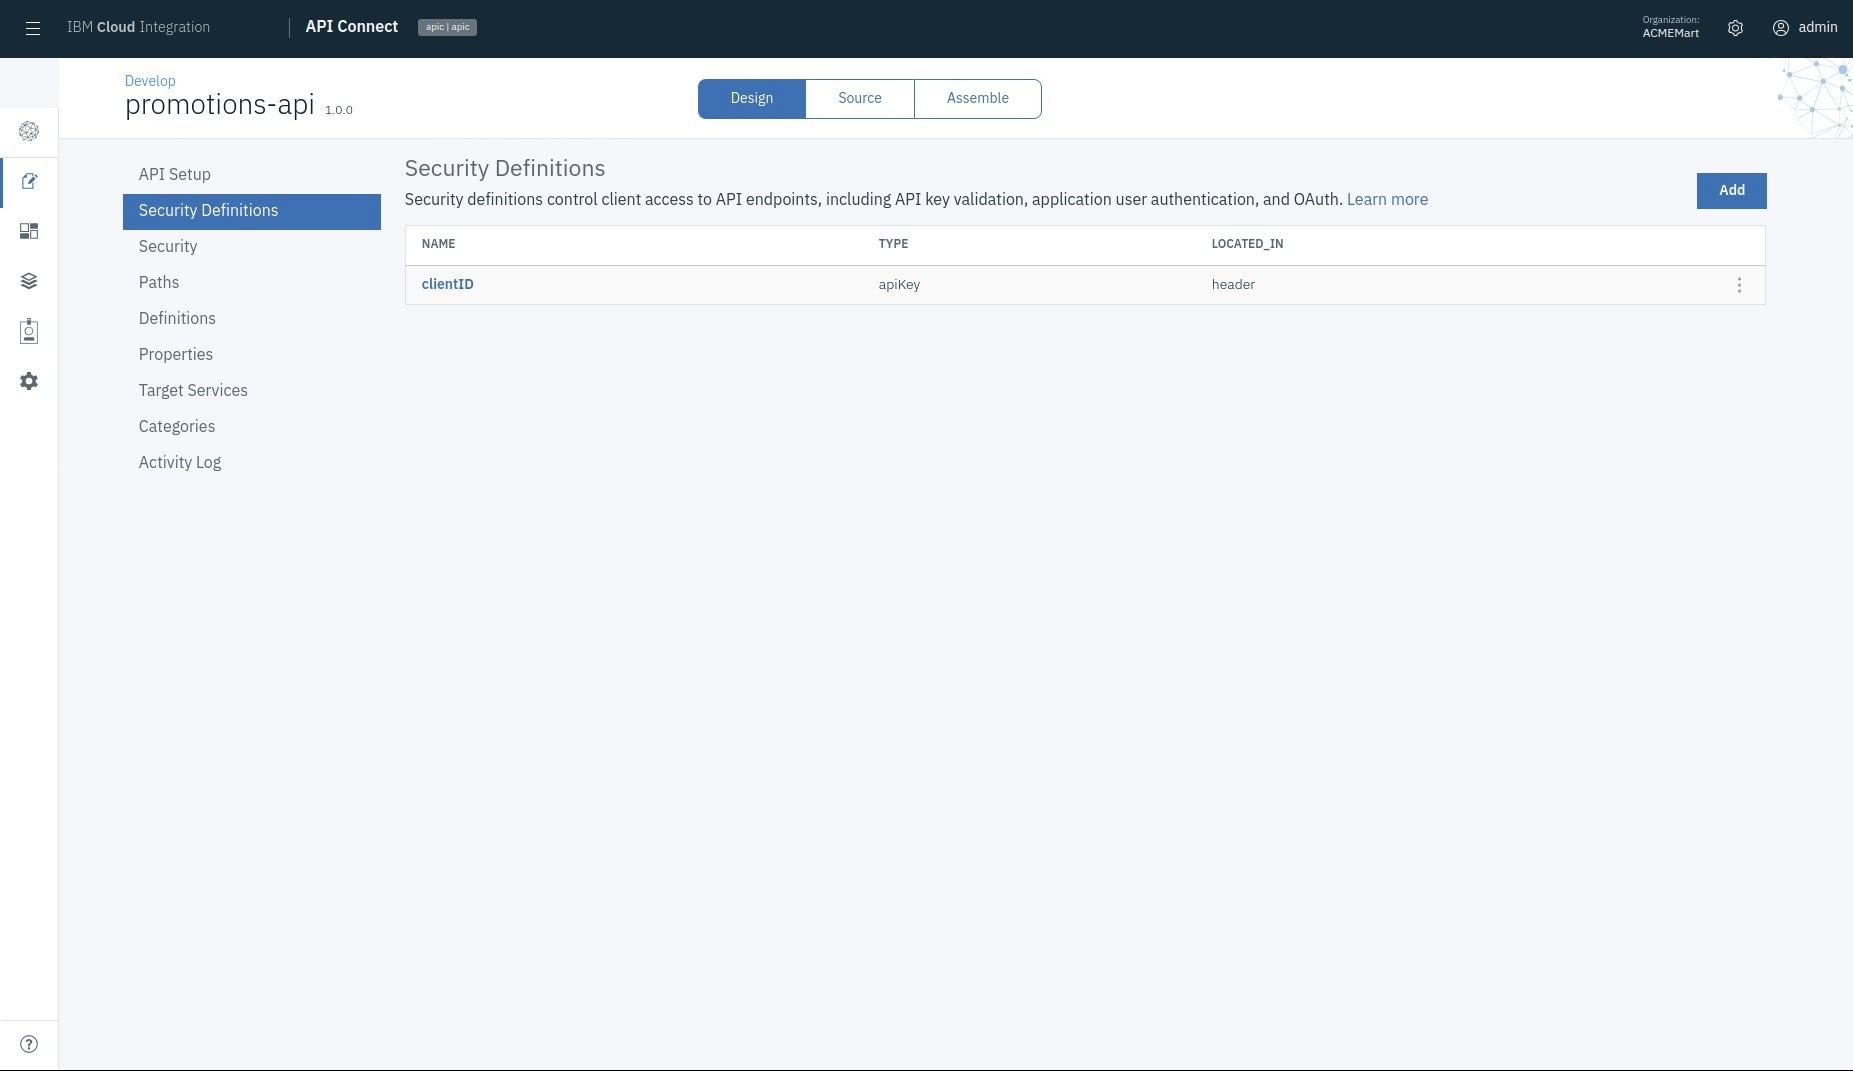 Screen capture showing how IBM Cloud Integration works to help secure and govern APIs.